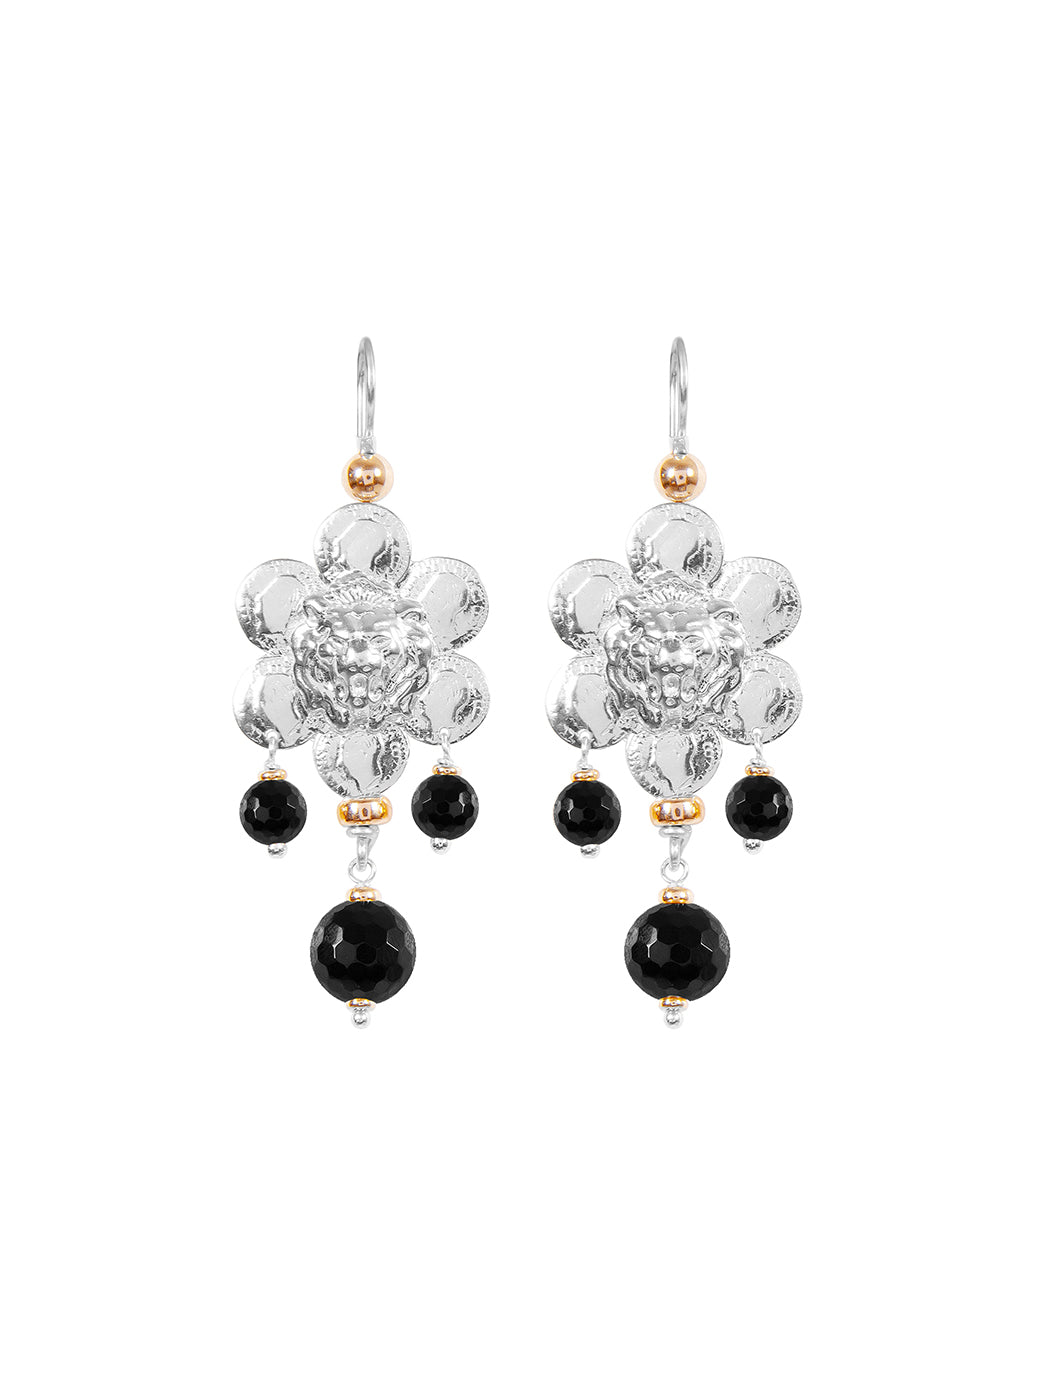 Fiorina Jewellery Giardini Earrings Black Onyx